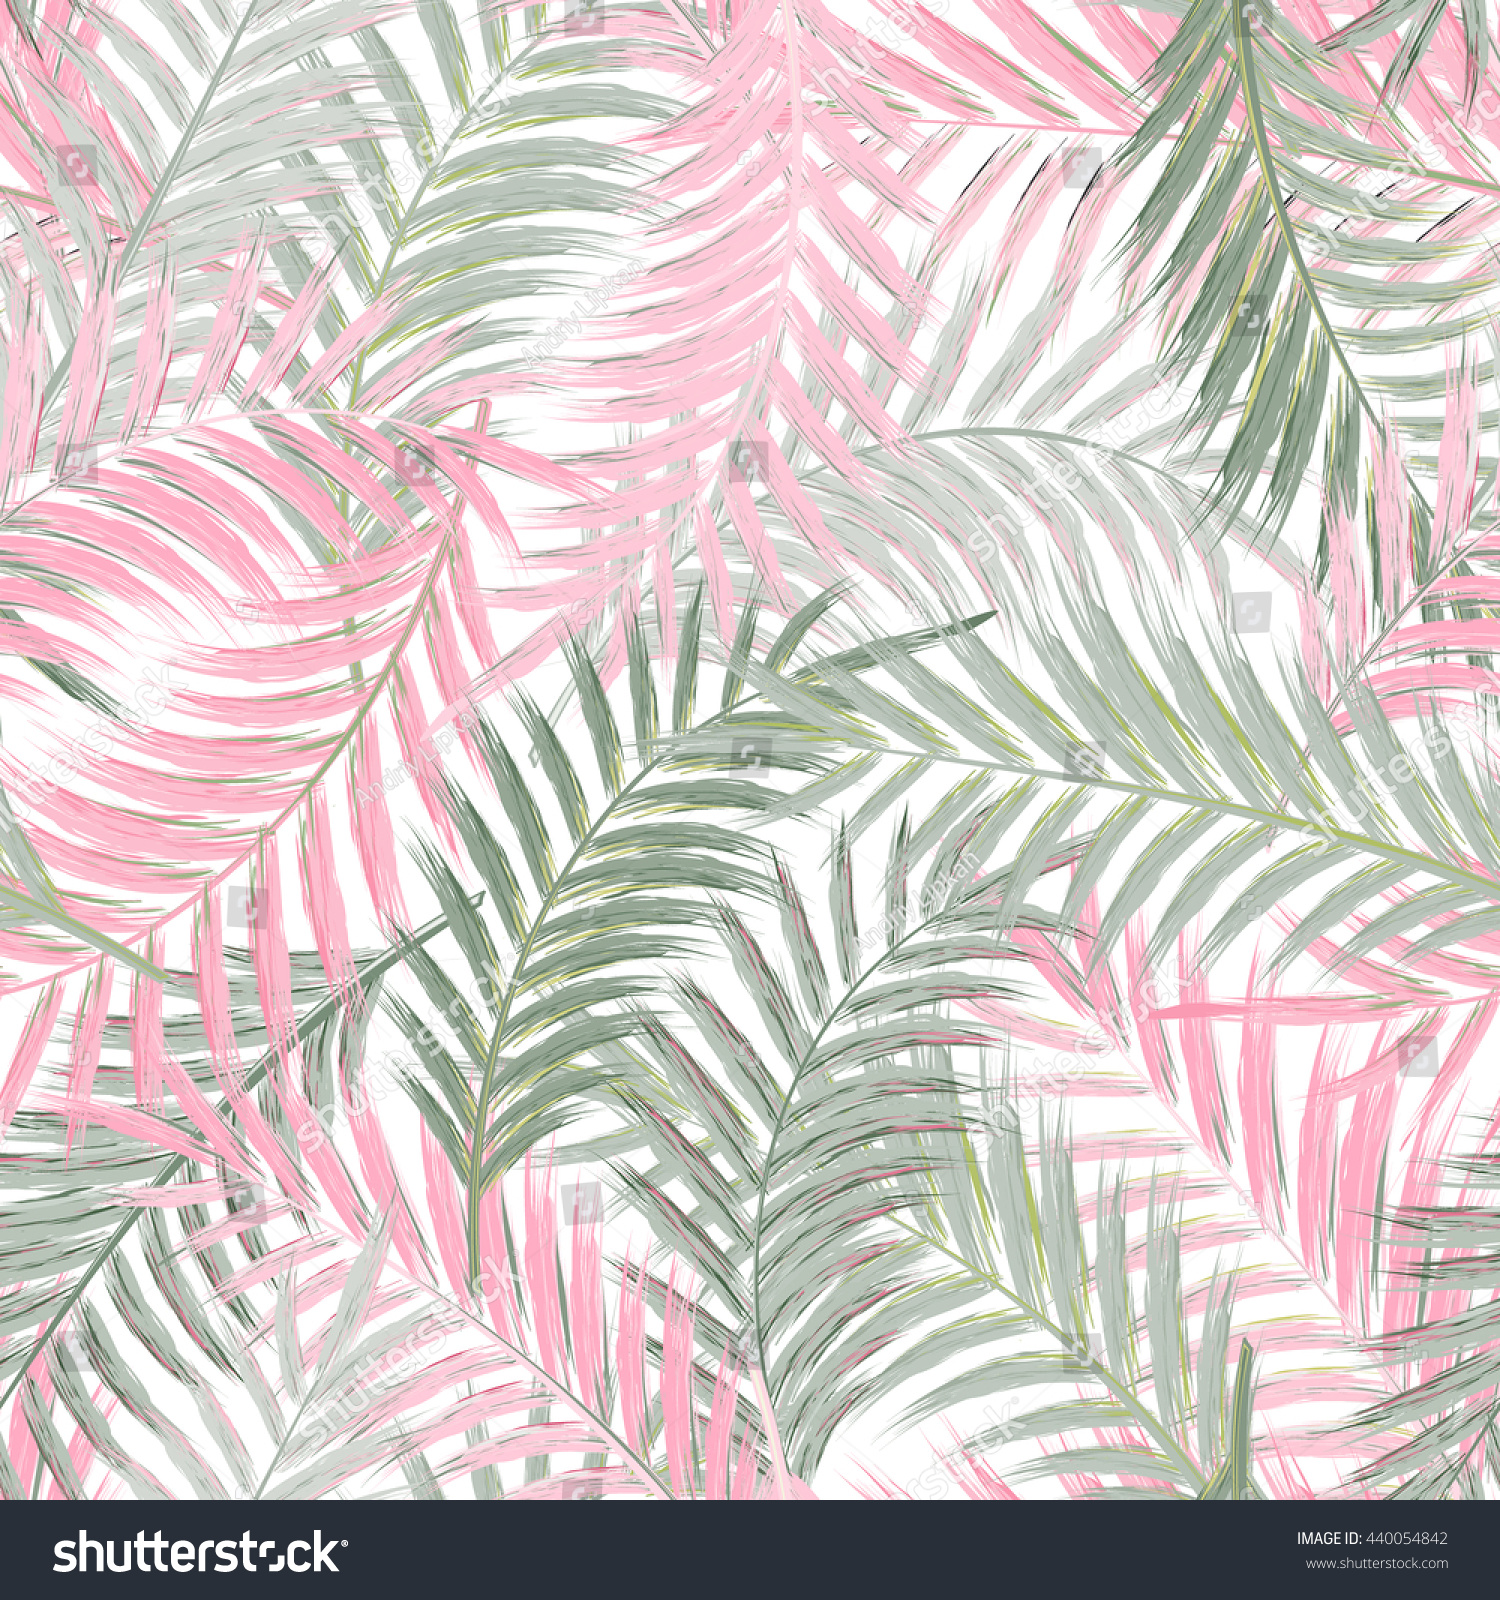 pink green tropical palm tree 28 images palm tree on  : stock photo leaves of palm tree seamless pattern palm leaf in gray pink on white background tropical trees 440054842 from grudge.reddingcaplumbing.com size 1500 x 1600 jpeg 1370kB